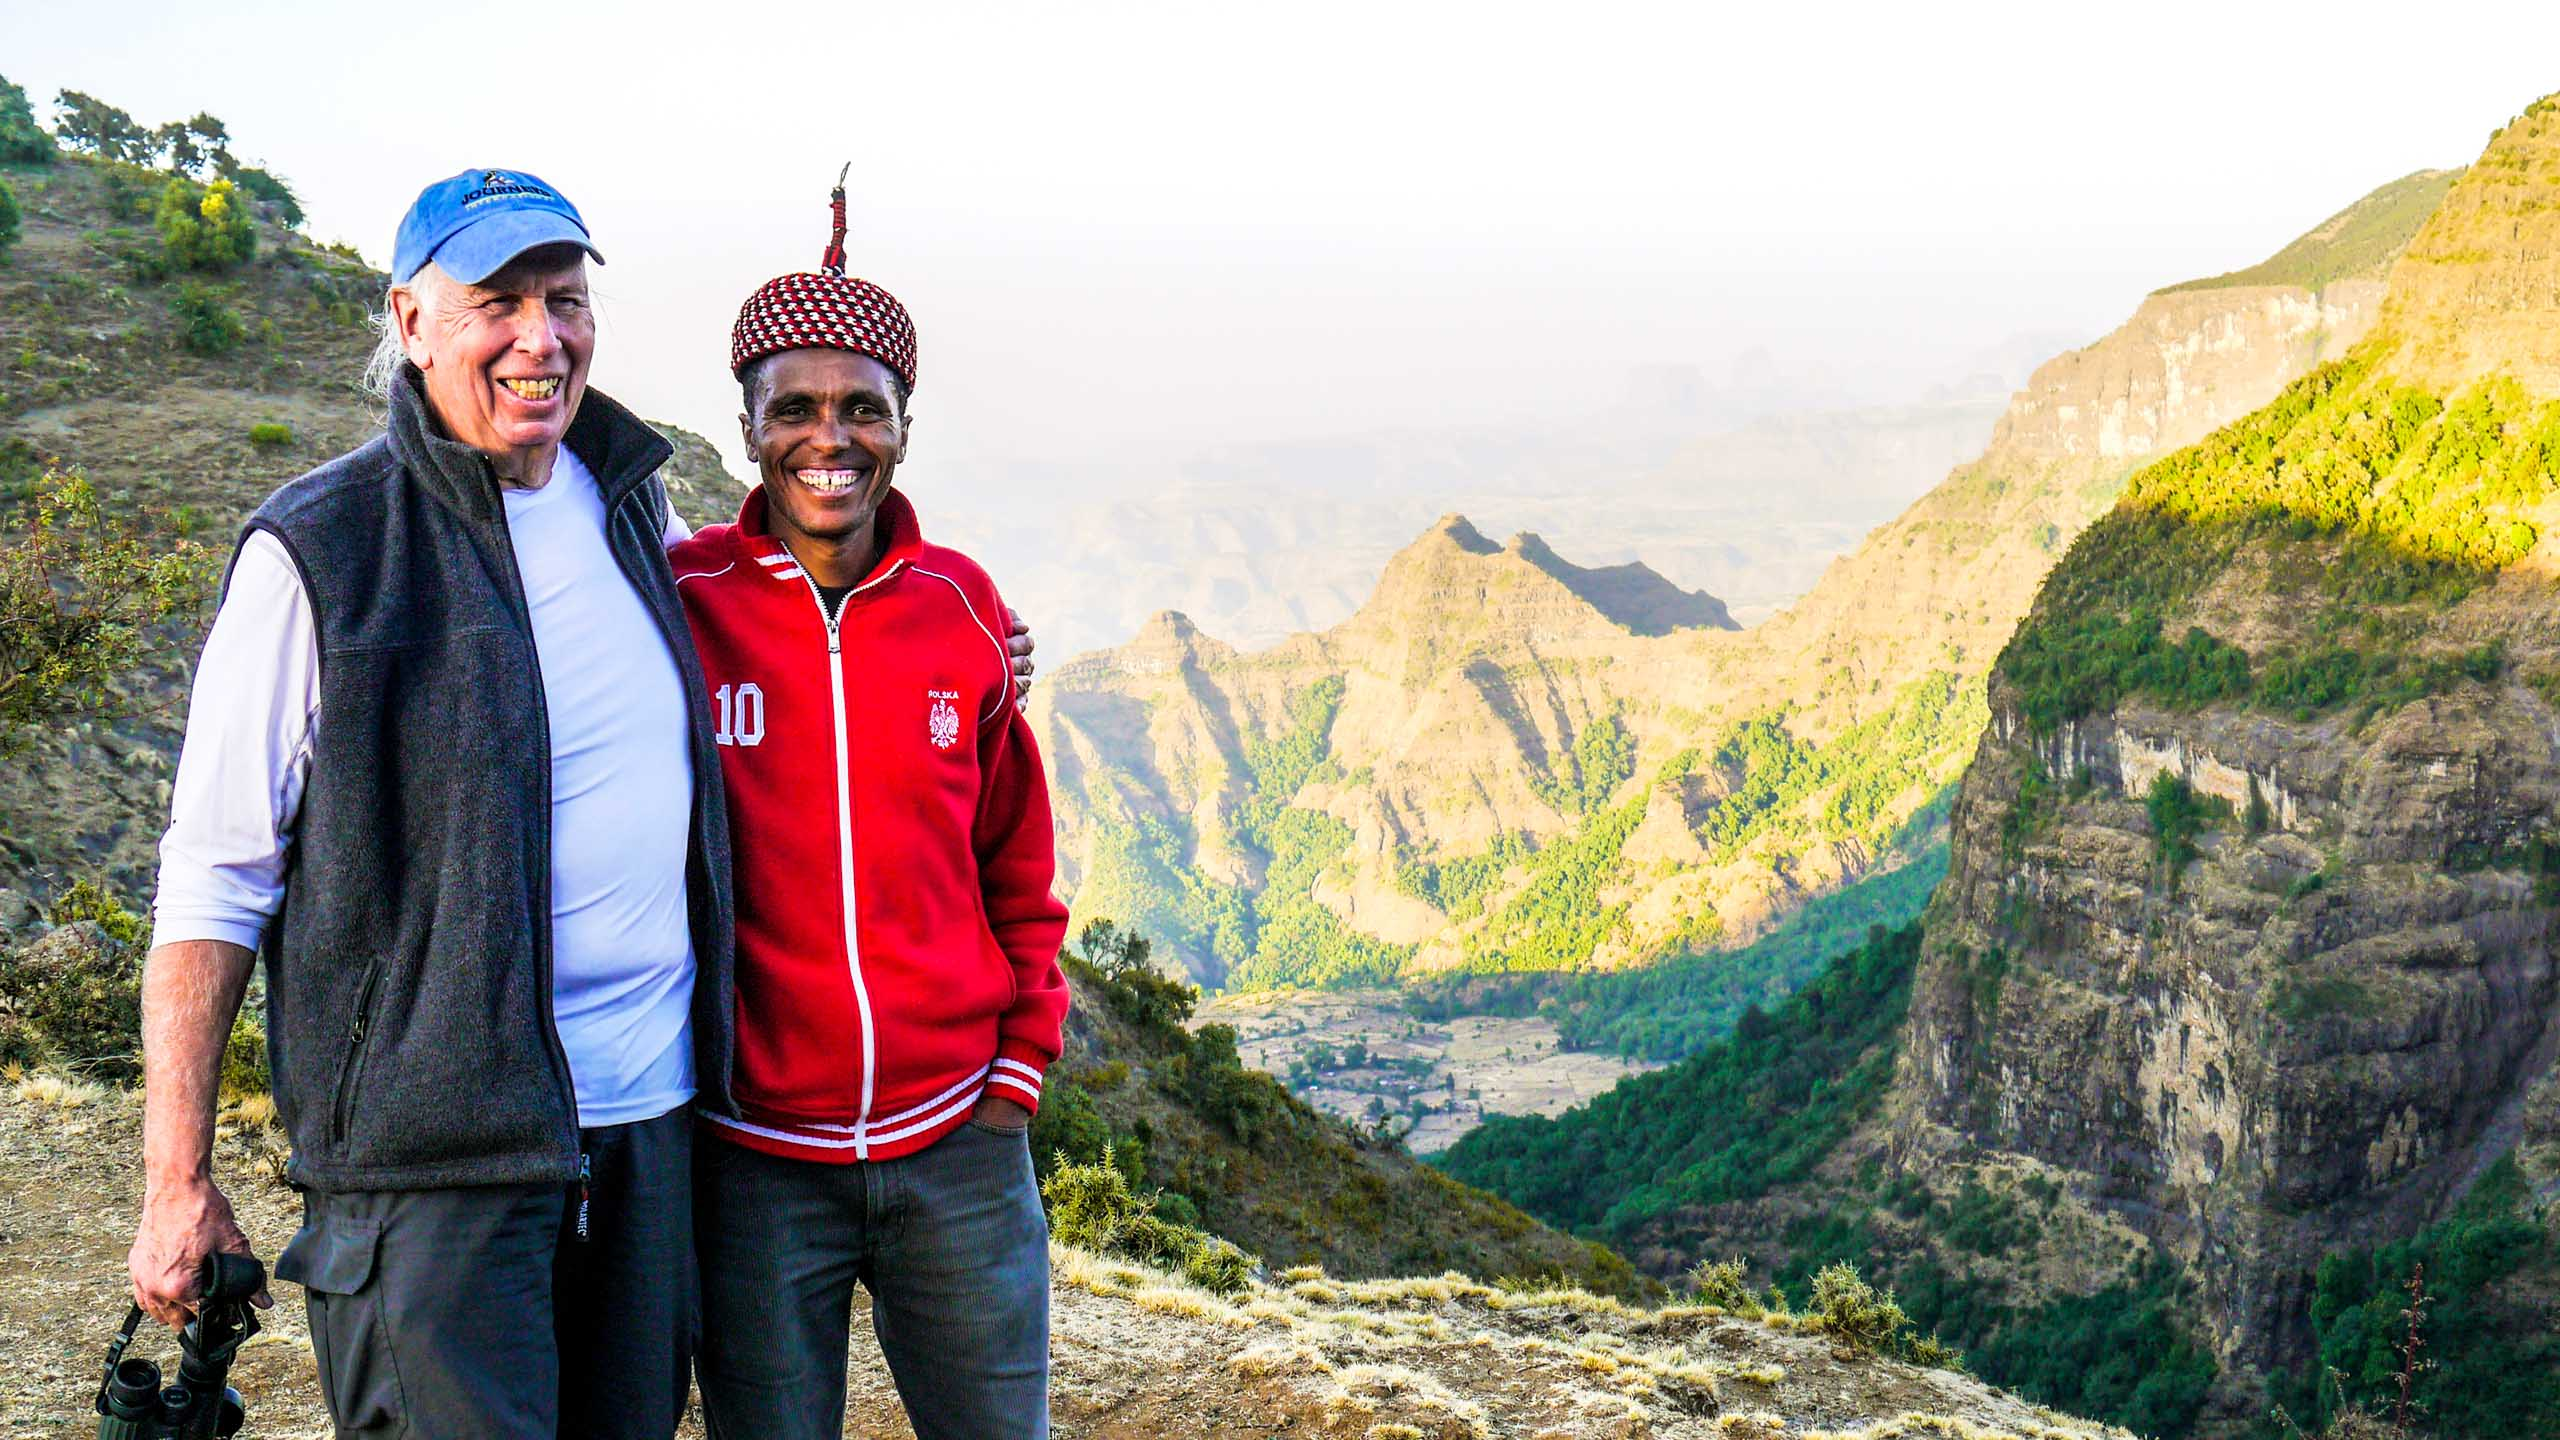 Two men pose in front of Ethiopia landscape